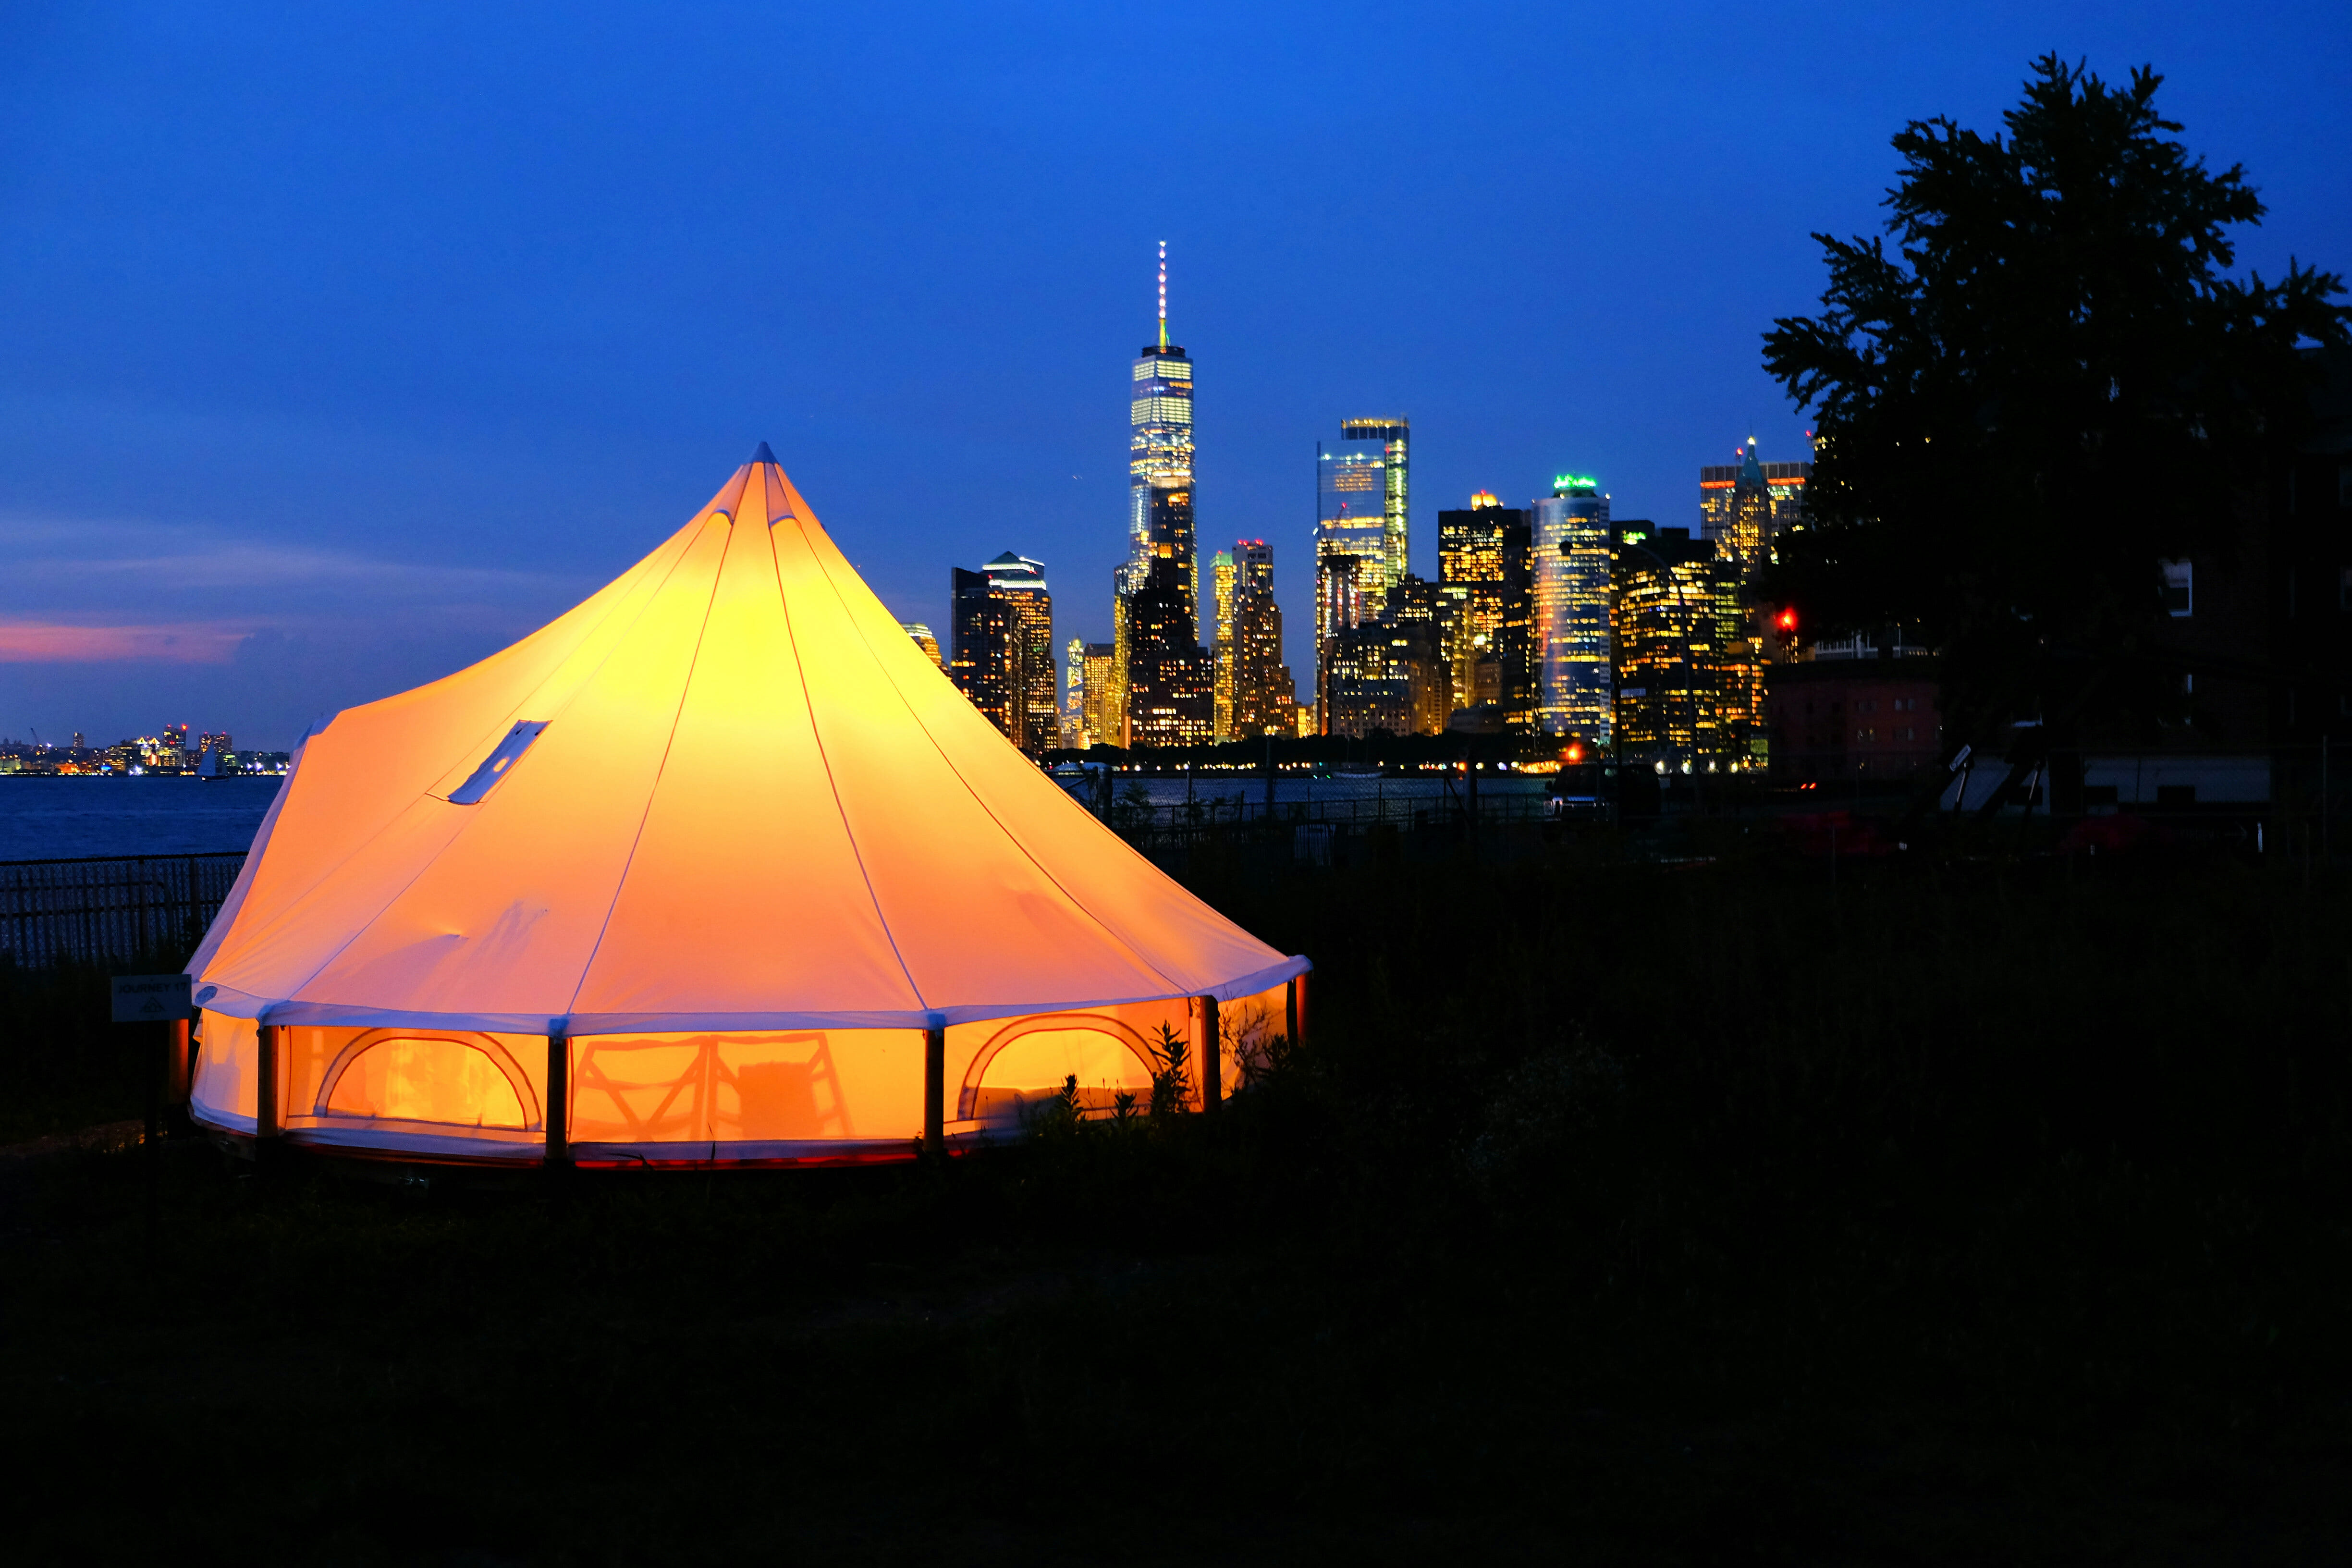 Govenors Island Glamping High Quality Wallpaper